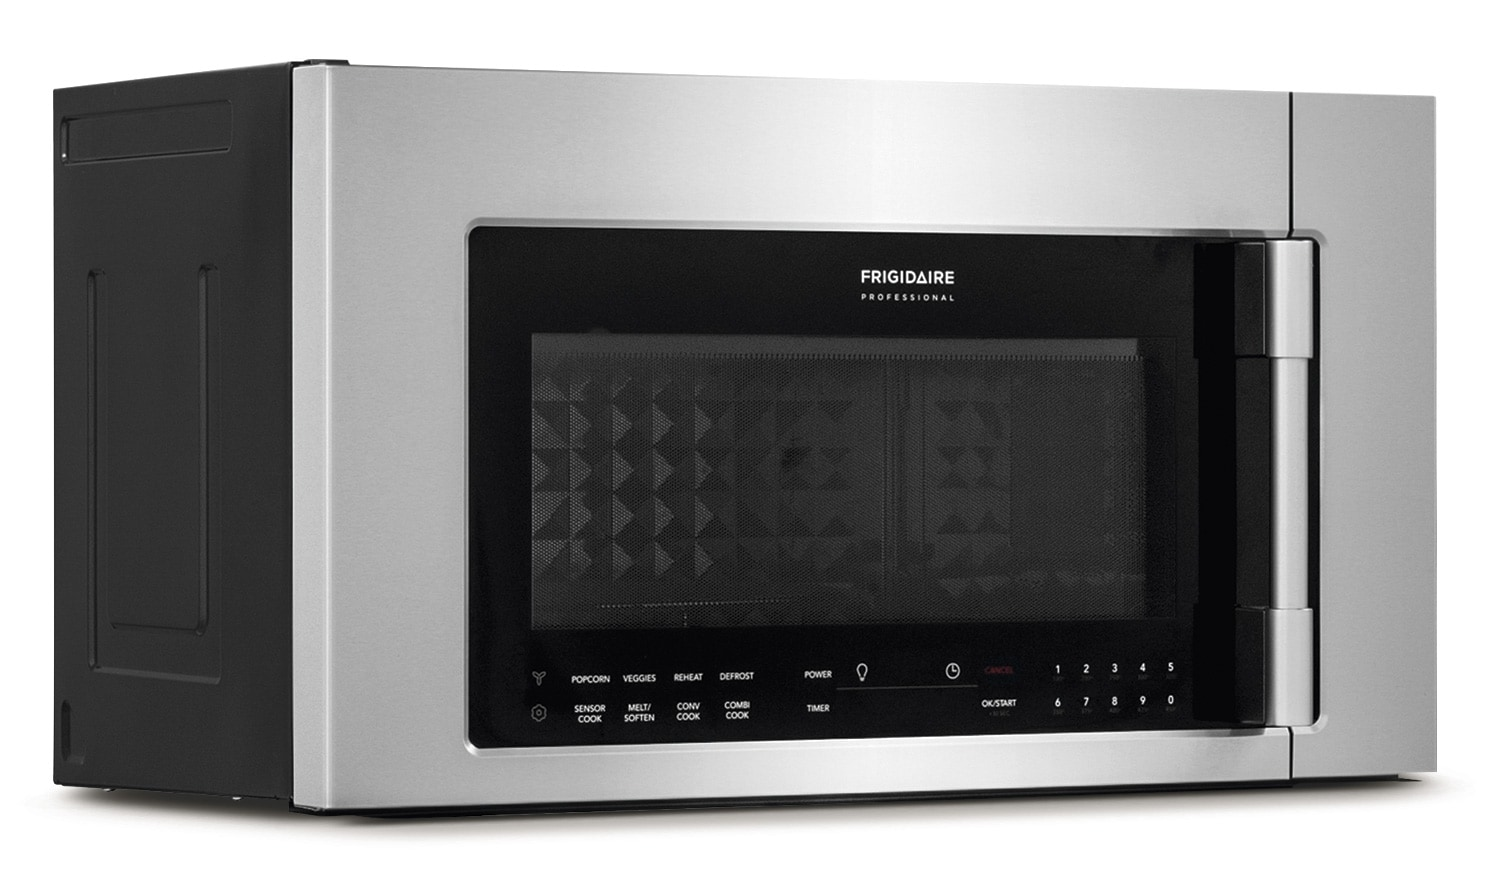 Frigidaire Professional Stainless Steel Over-the-Range Microwave (1.8 Cu. Ft.) - CPBM3077RF